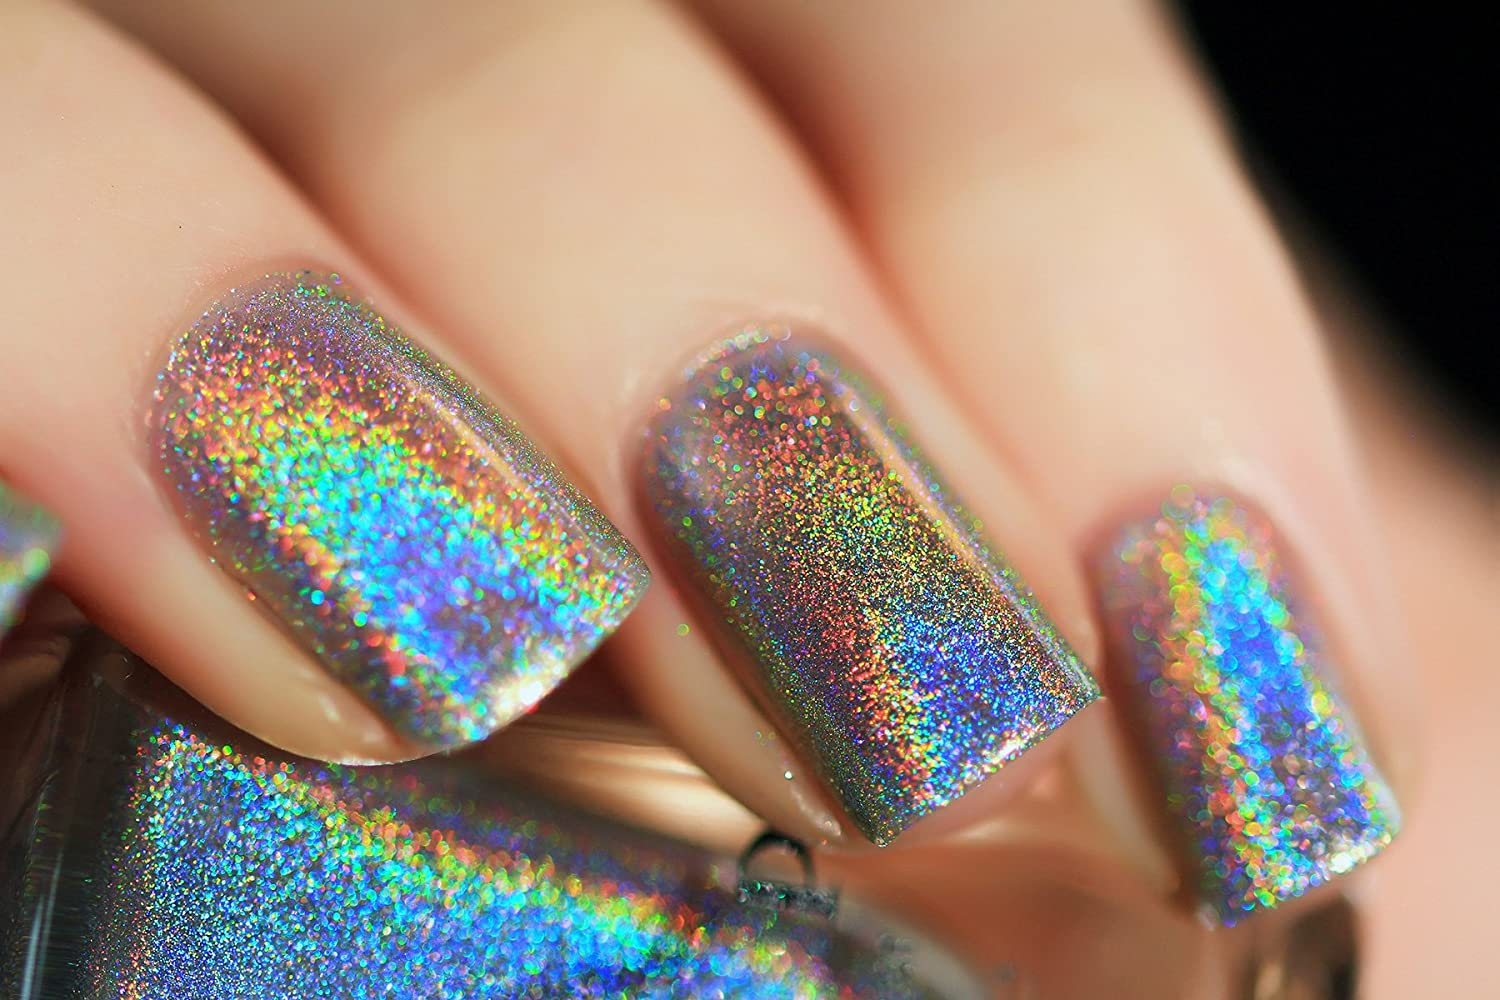 Amazon.com : ILNP MEGA (S) - Scattered Holographic Nail Polish : Beauty